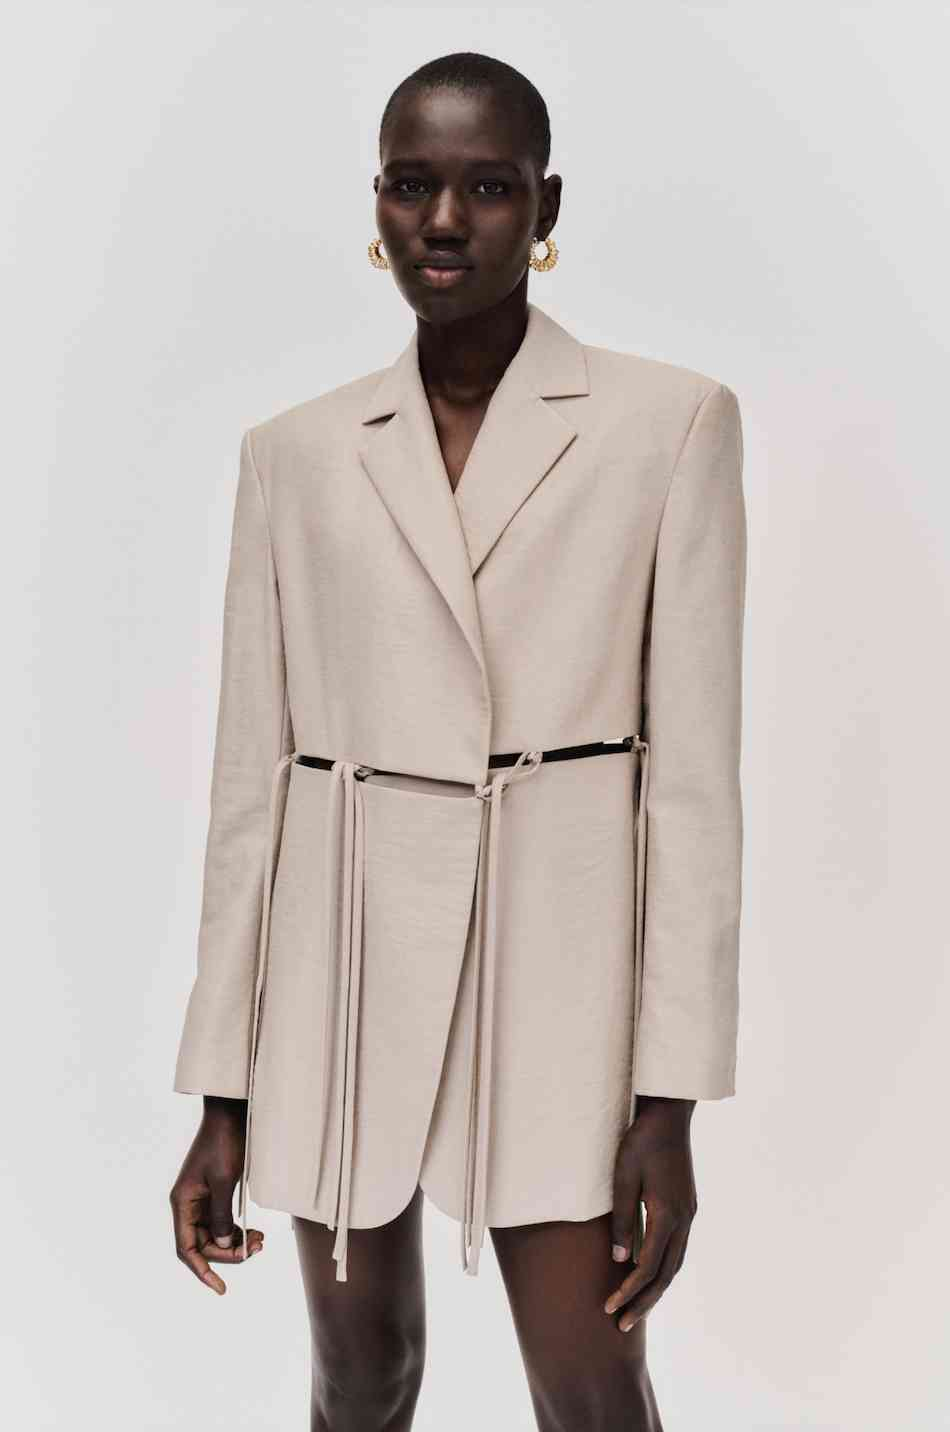 SPLIT JACKET by OAT, available on yuzefi.com for EUR525 Hailey Baldwin Outerwear Exact Product